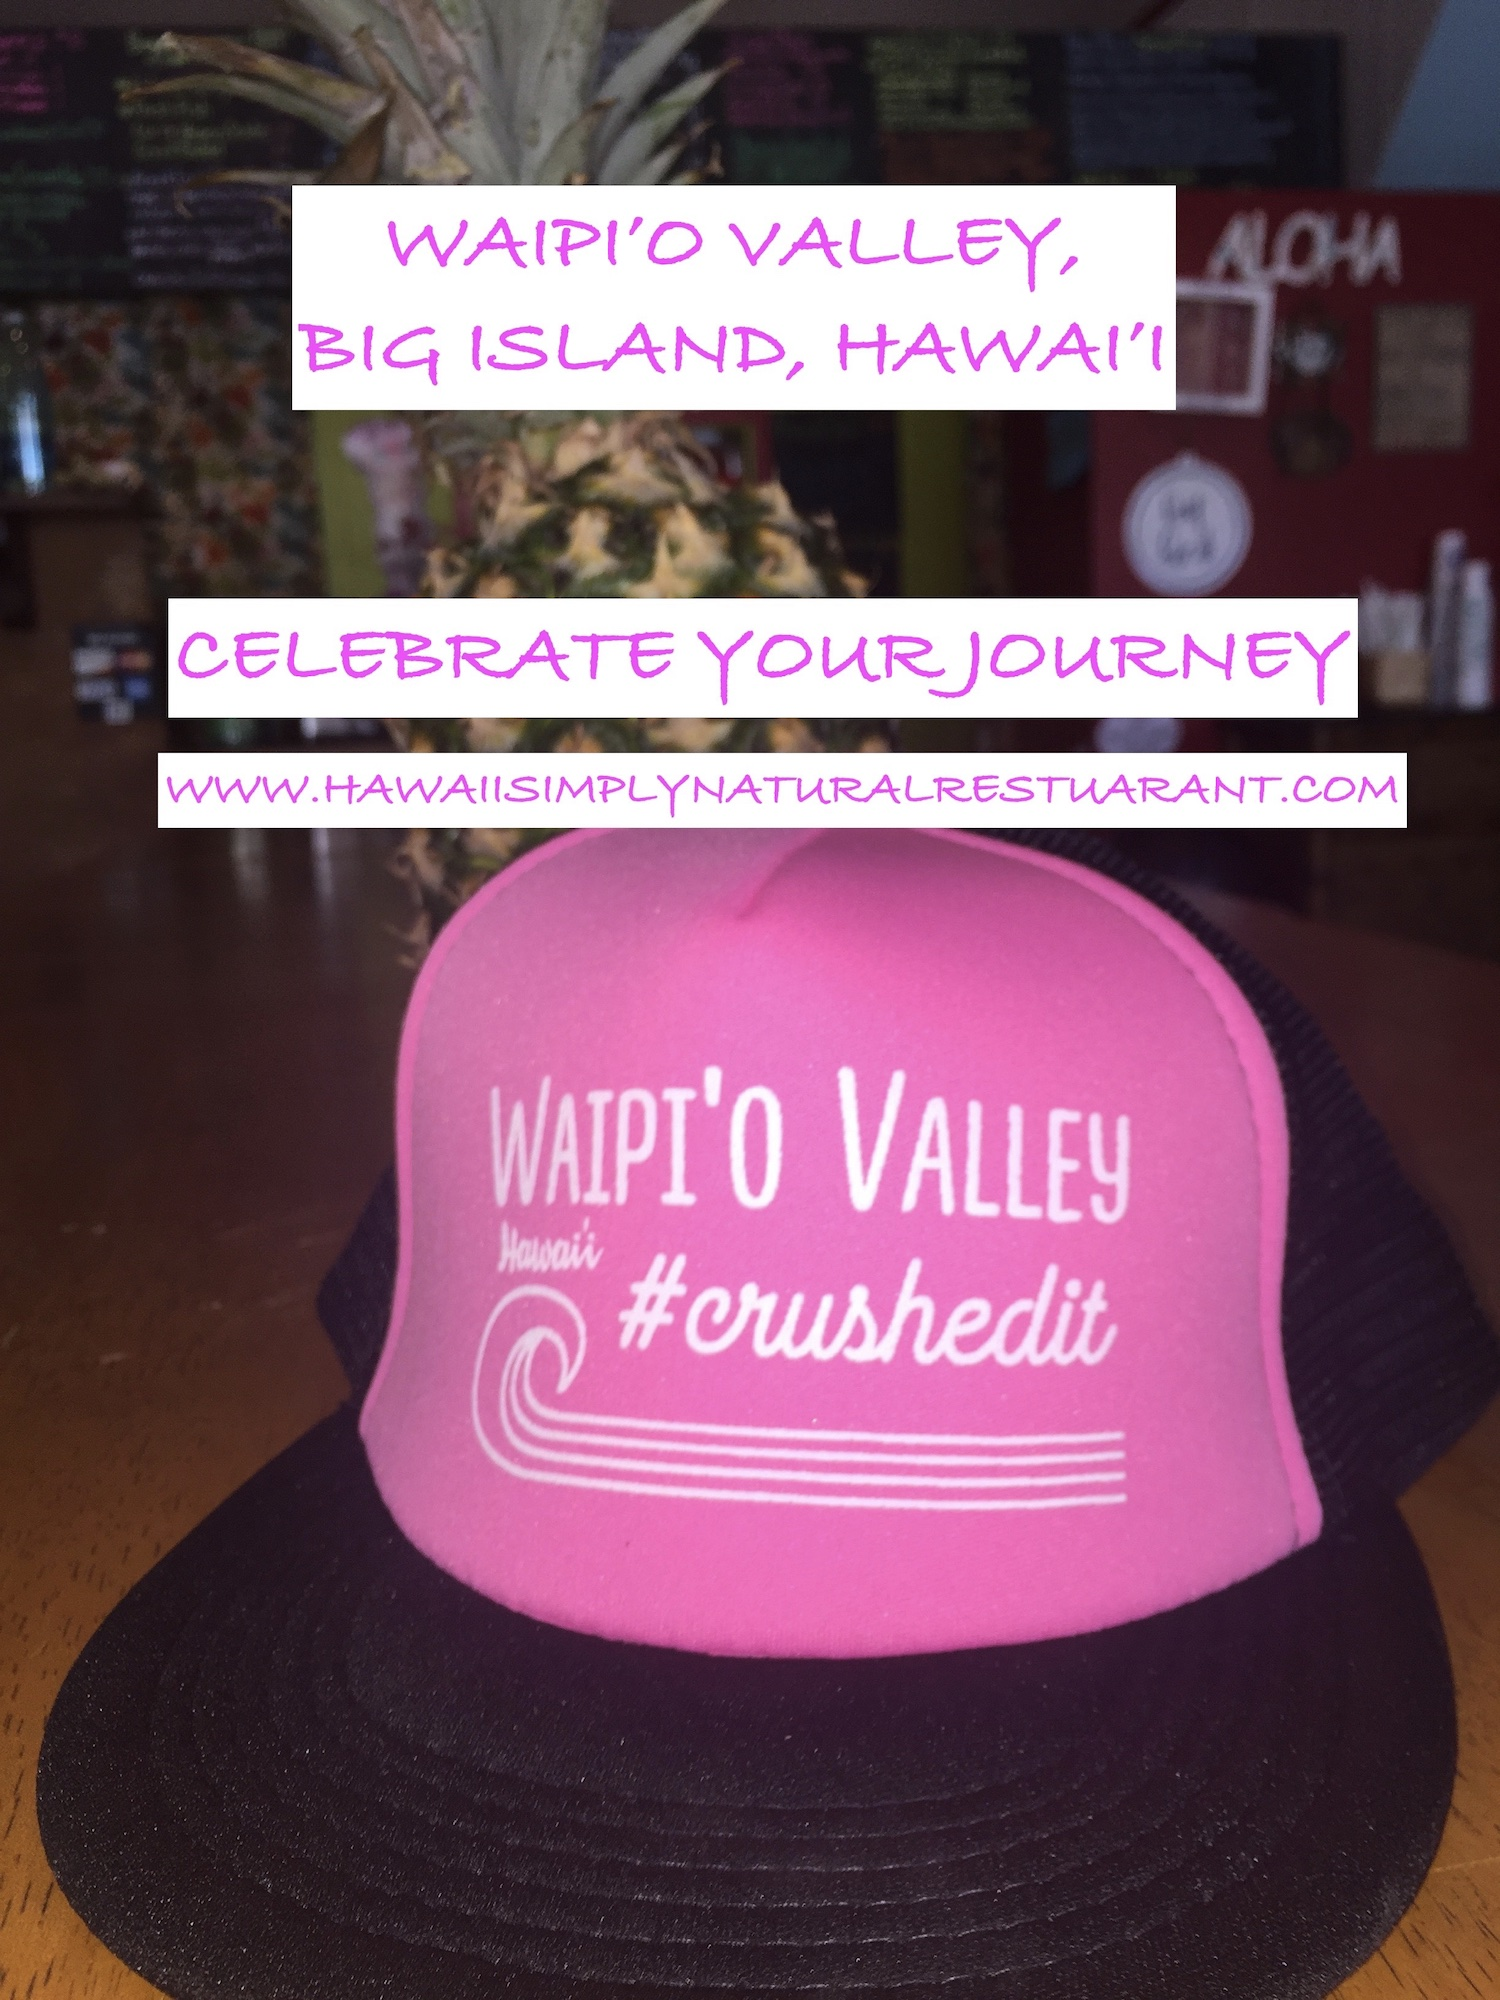 Click the photo to read more on the quote shown below Let's conquer Waipi'o. Celebrate your journey.